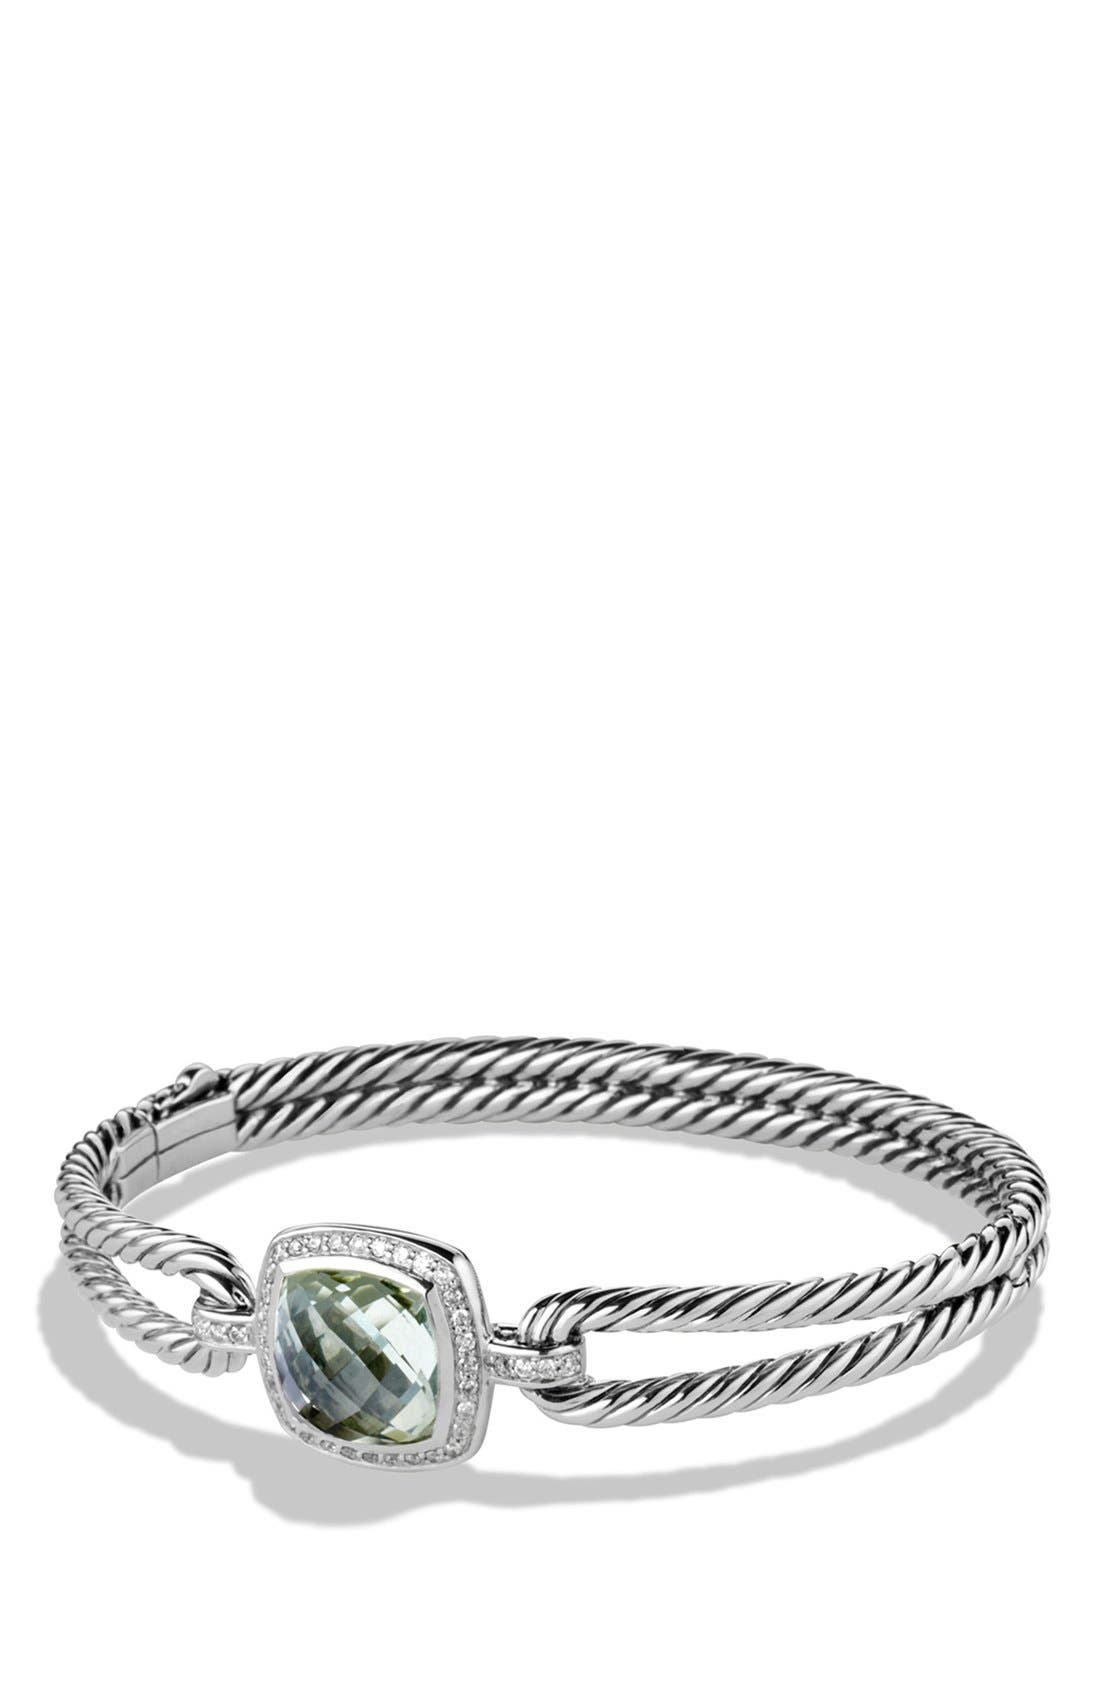 DAVID YURMAN Albion Bracelet with Semiprecious Stone and Diamonds